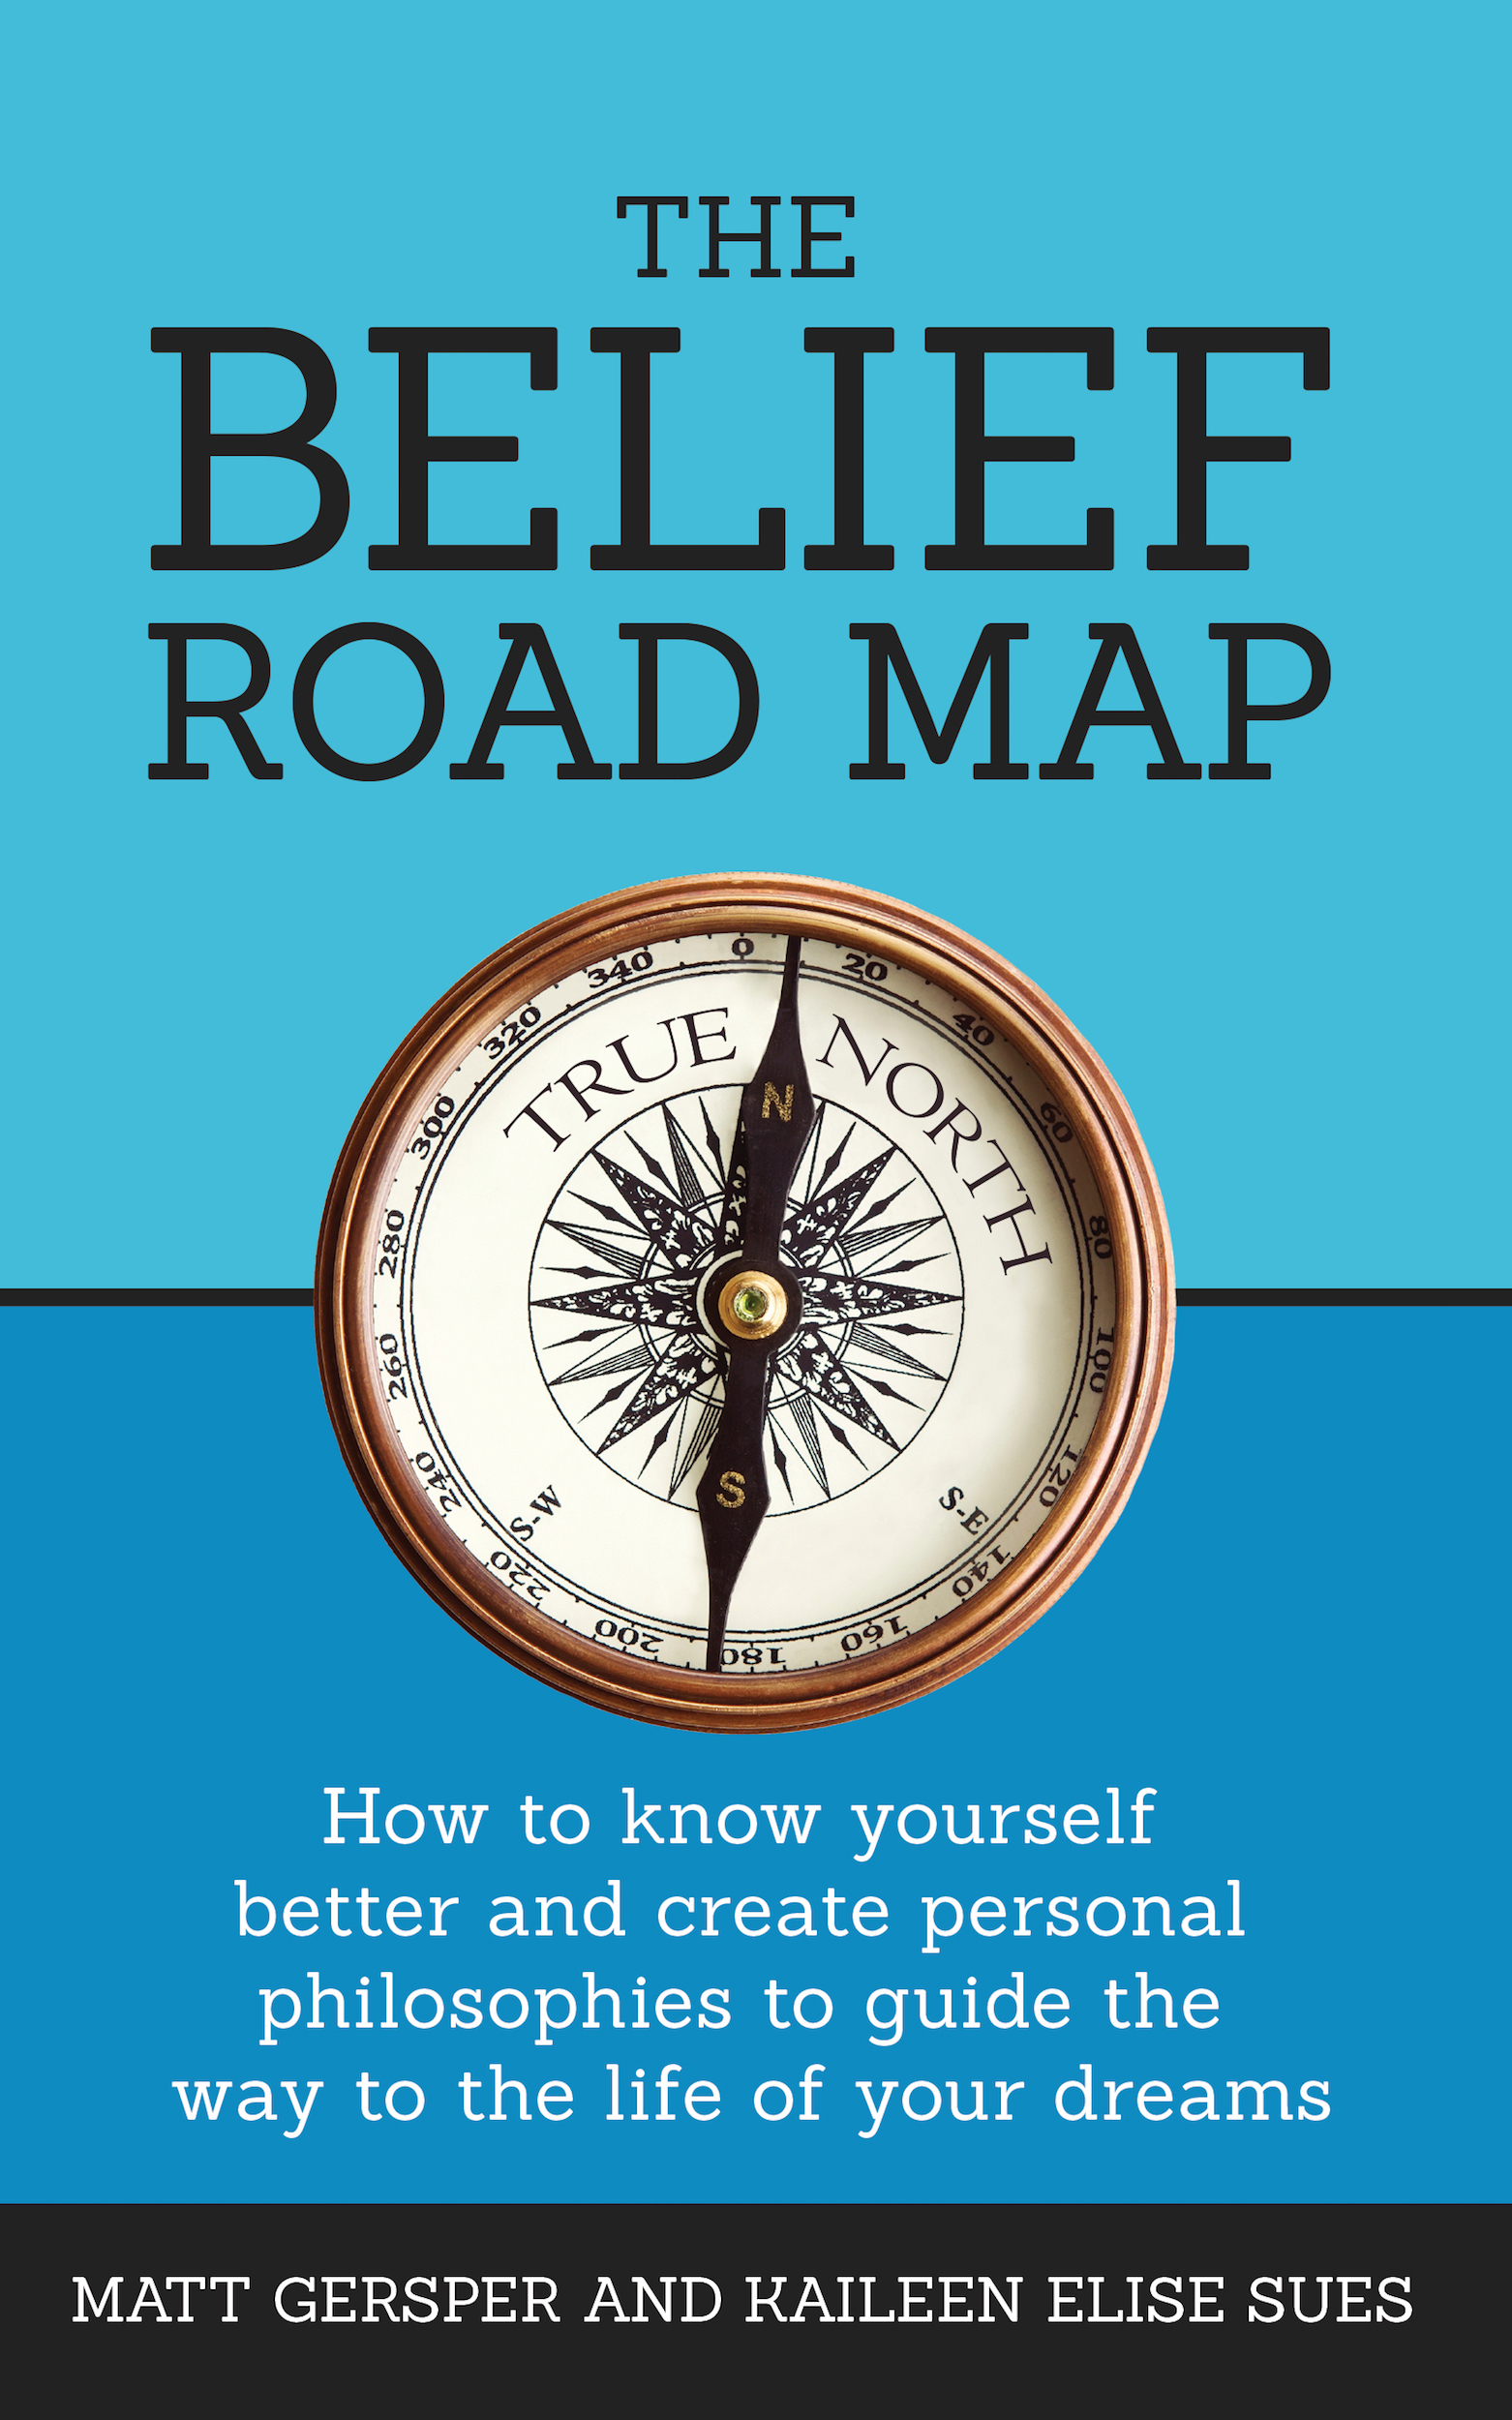 The Belief Road Map | happyliving.com